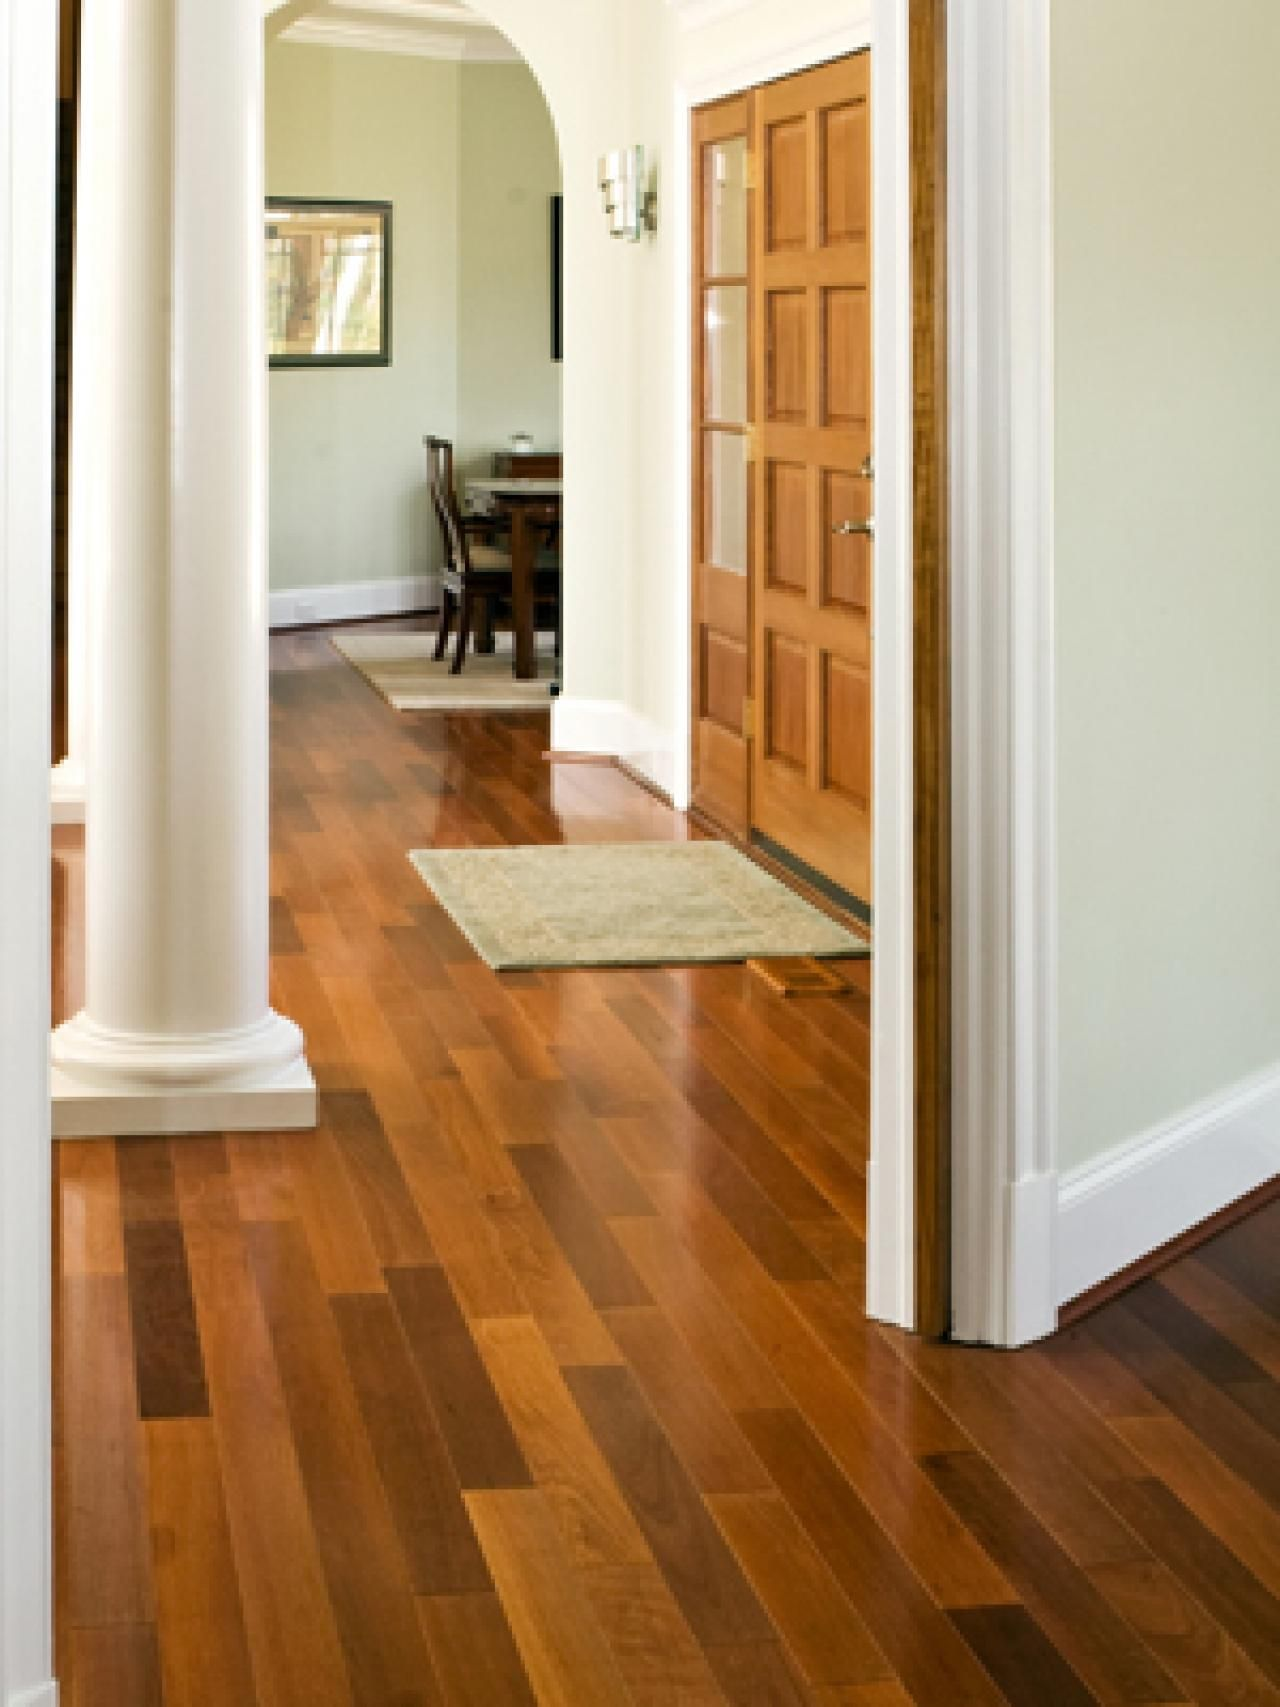 10 Stunning Hardwood Flooring Options Interior Design Styles And Color Schemes For Home Decorating Hgtv